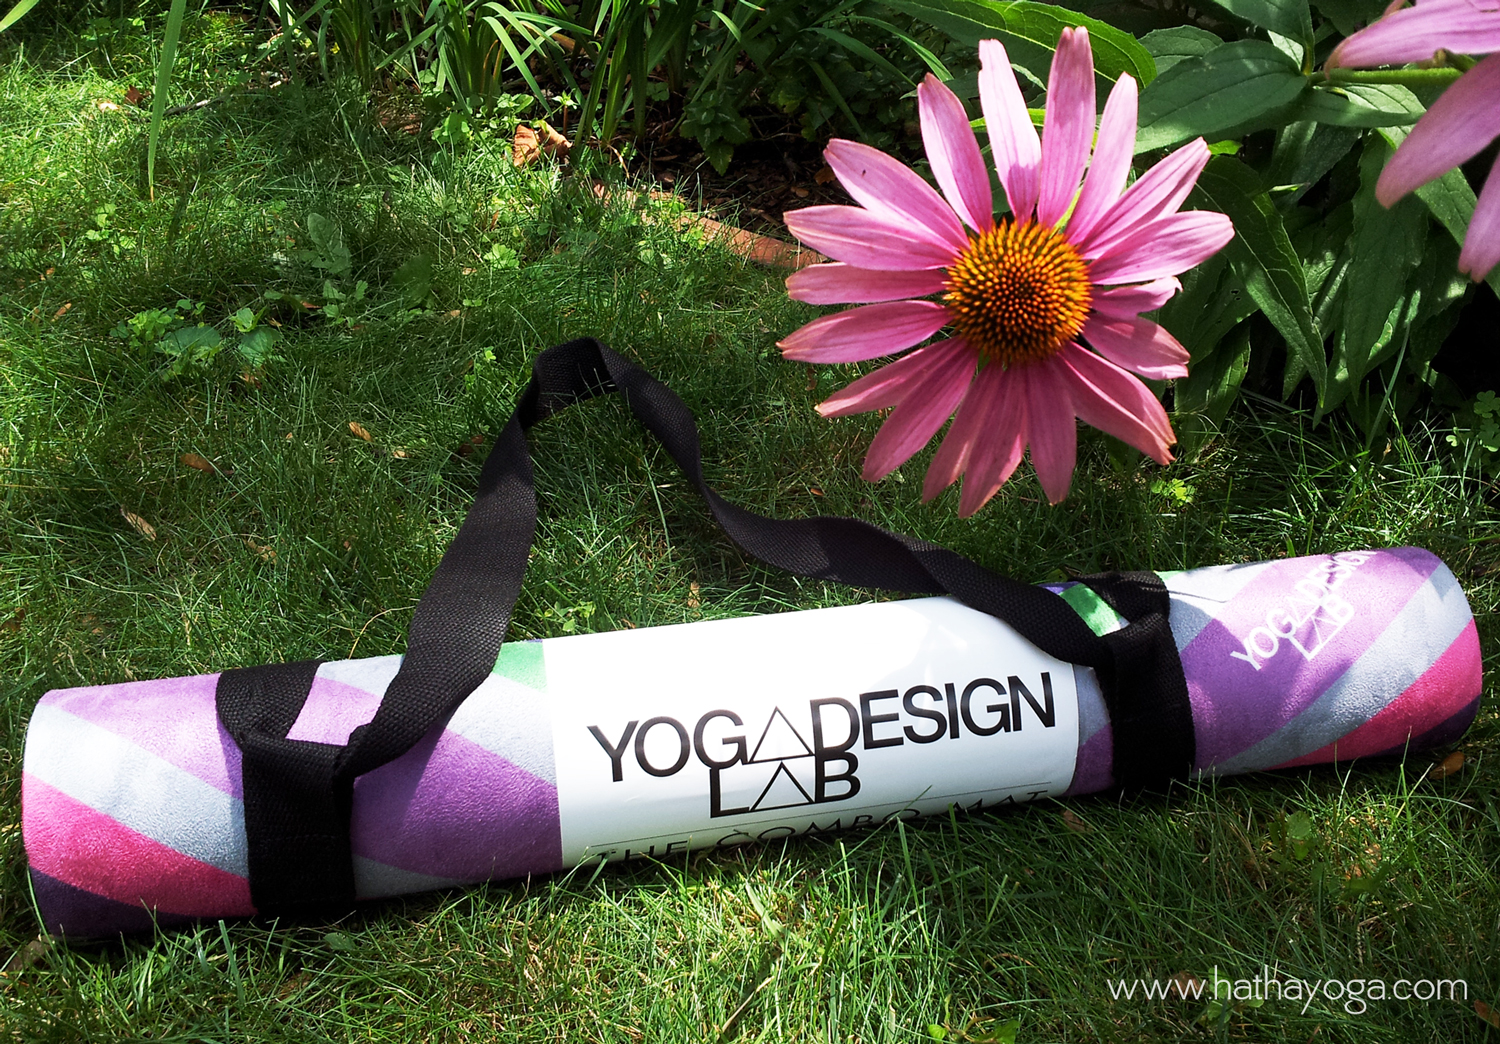 combo mat by yoga design lab